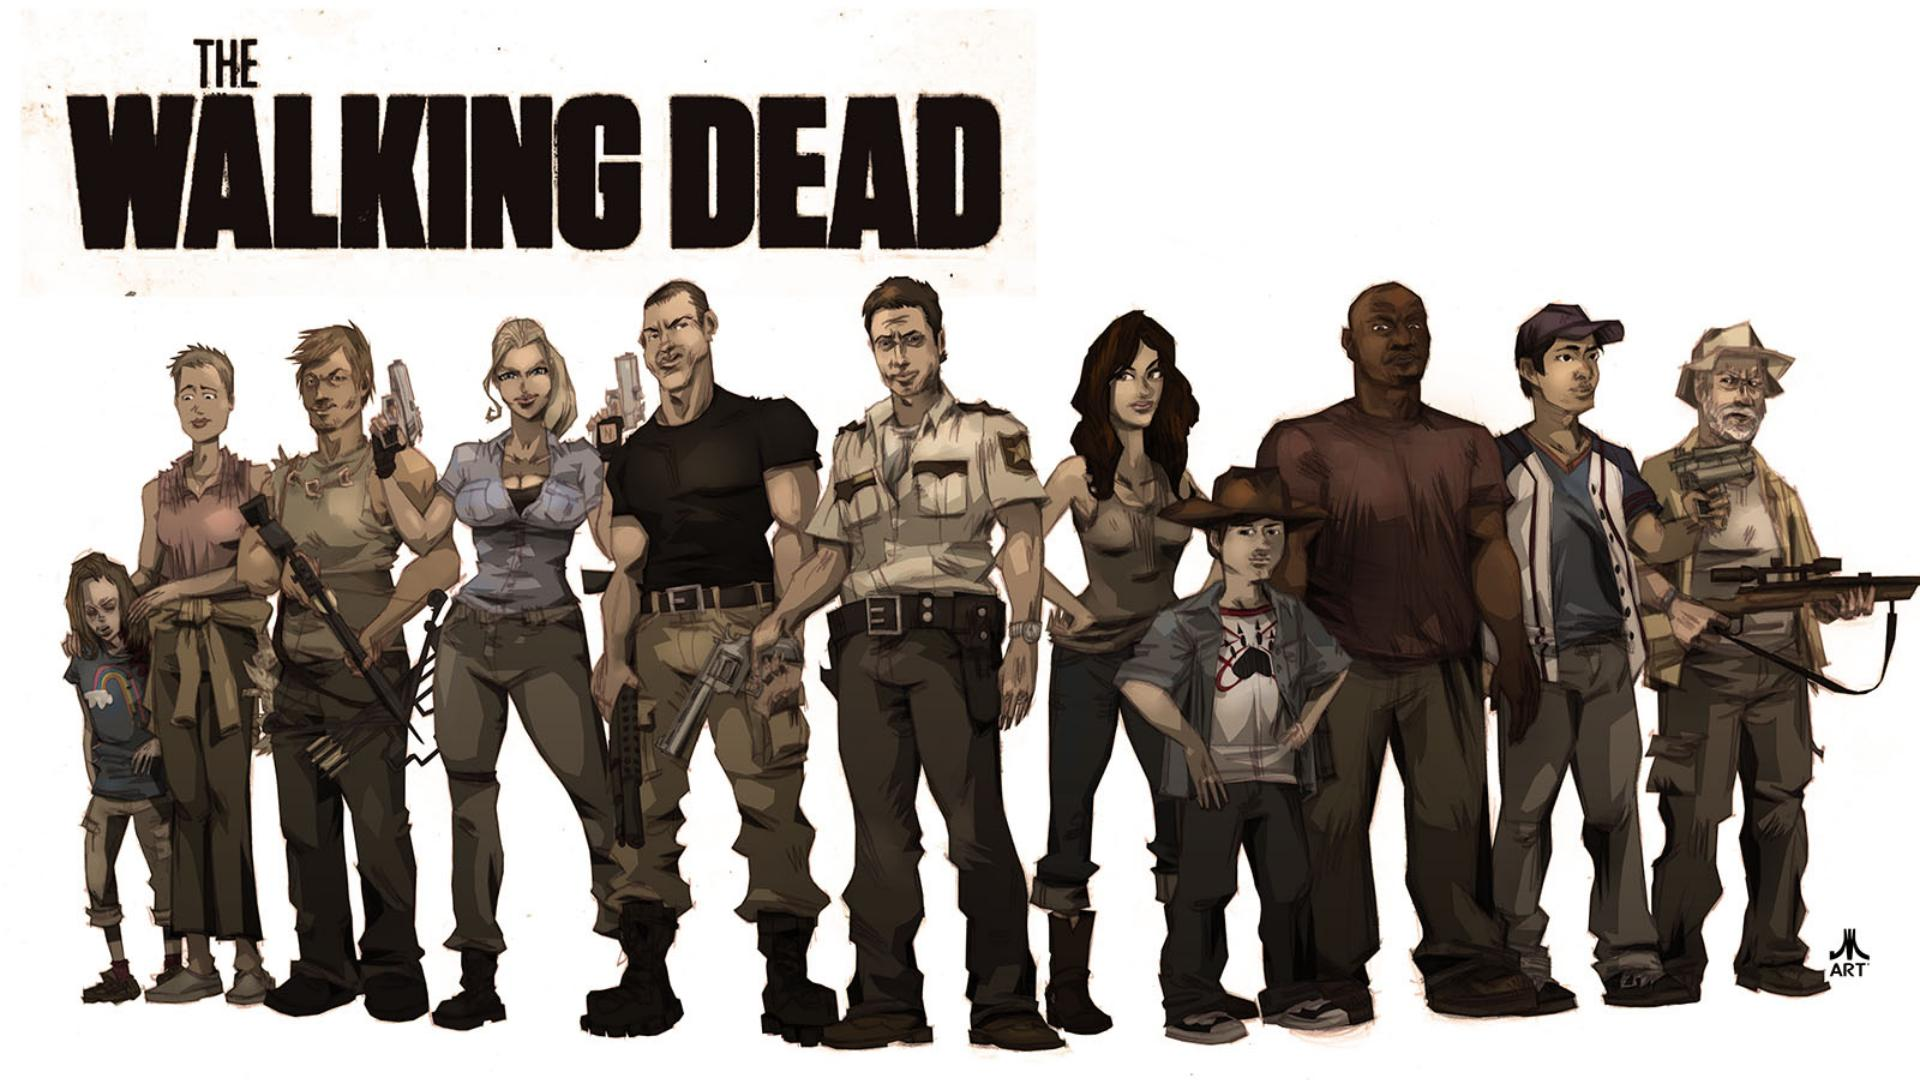 The Walking Dead Wallpaper High Definition High Quality 1920x1080